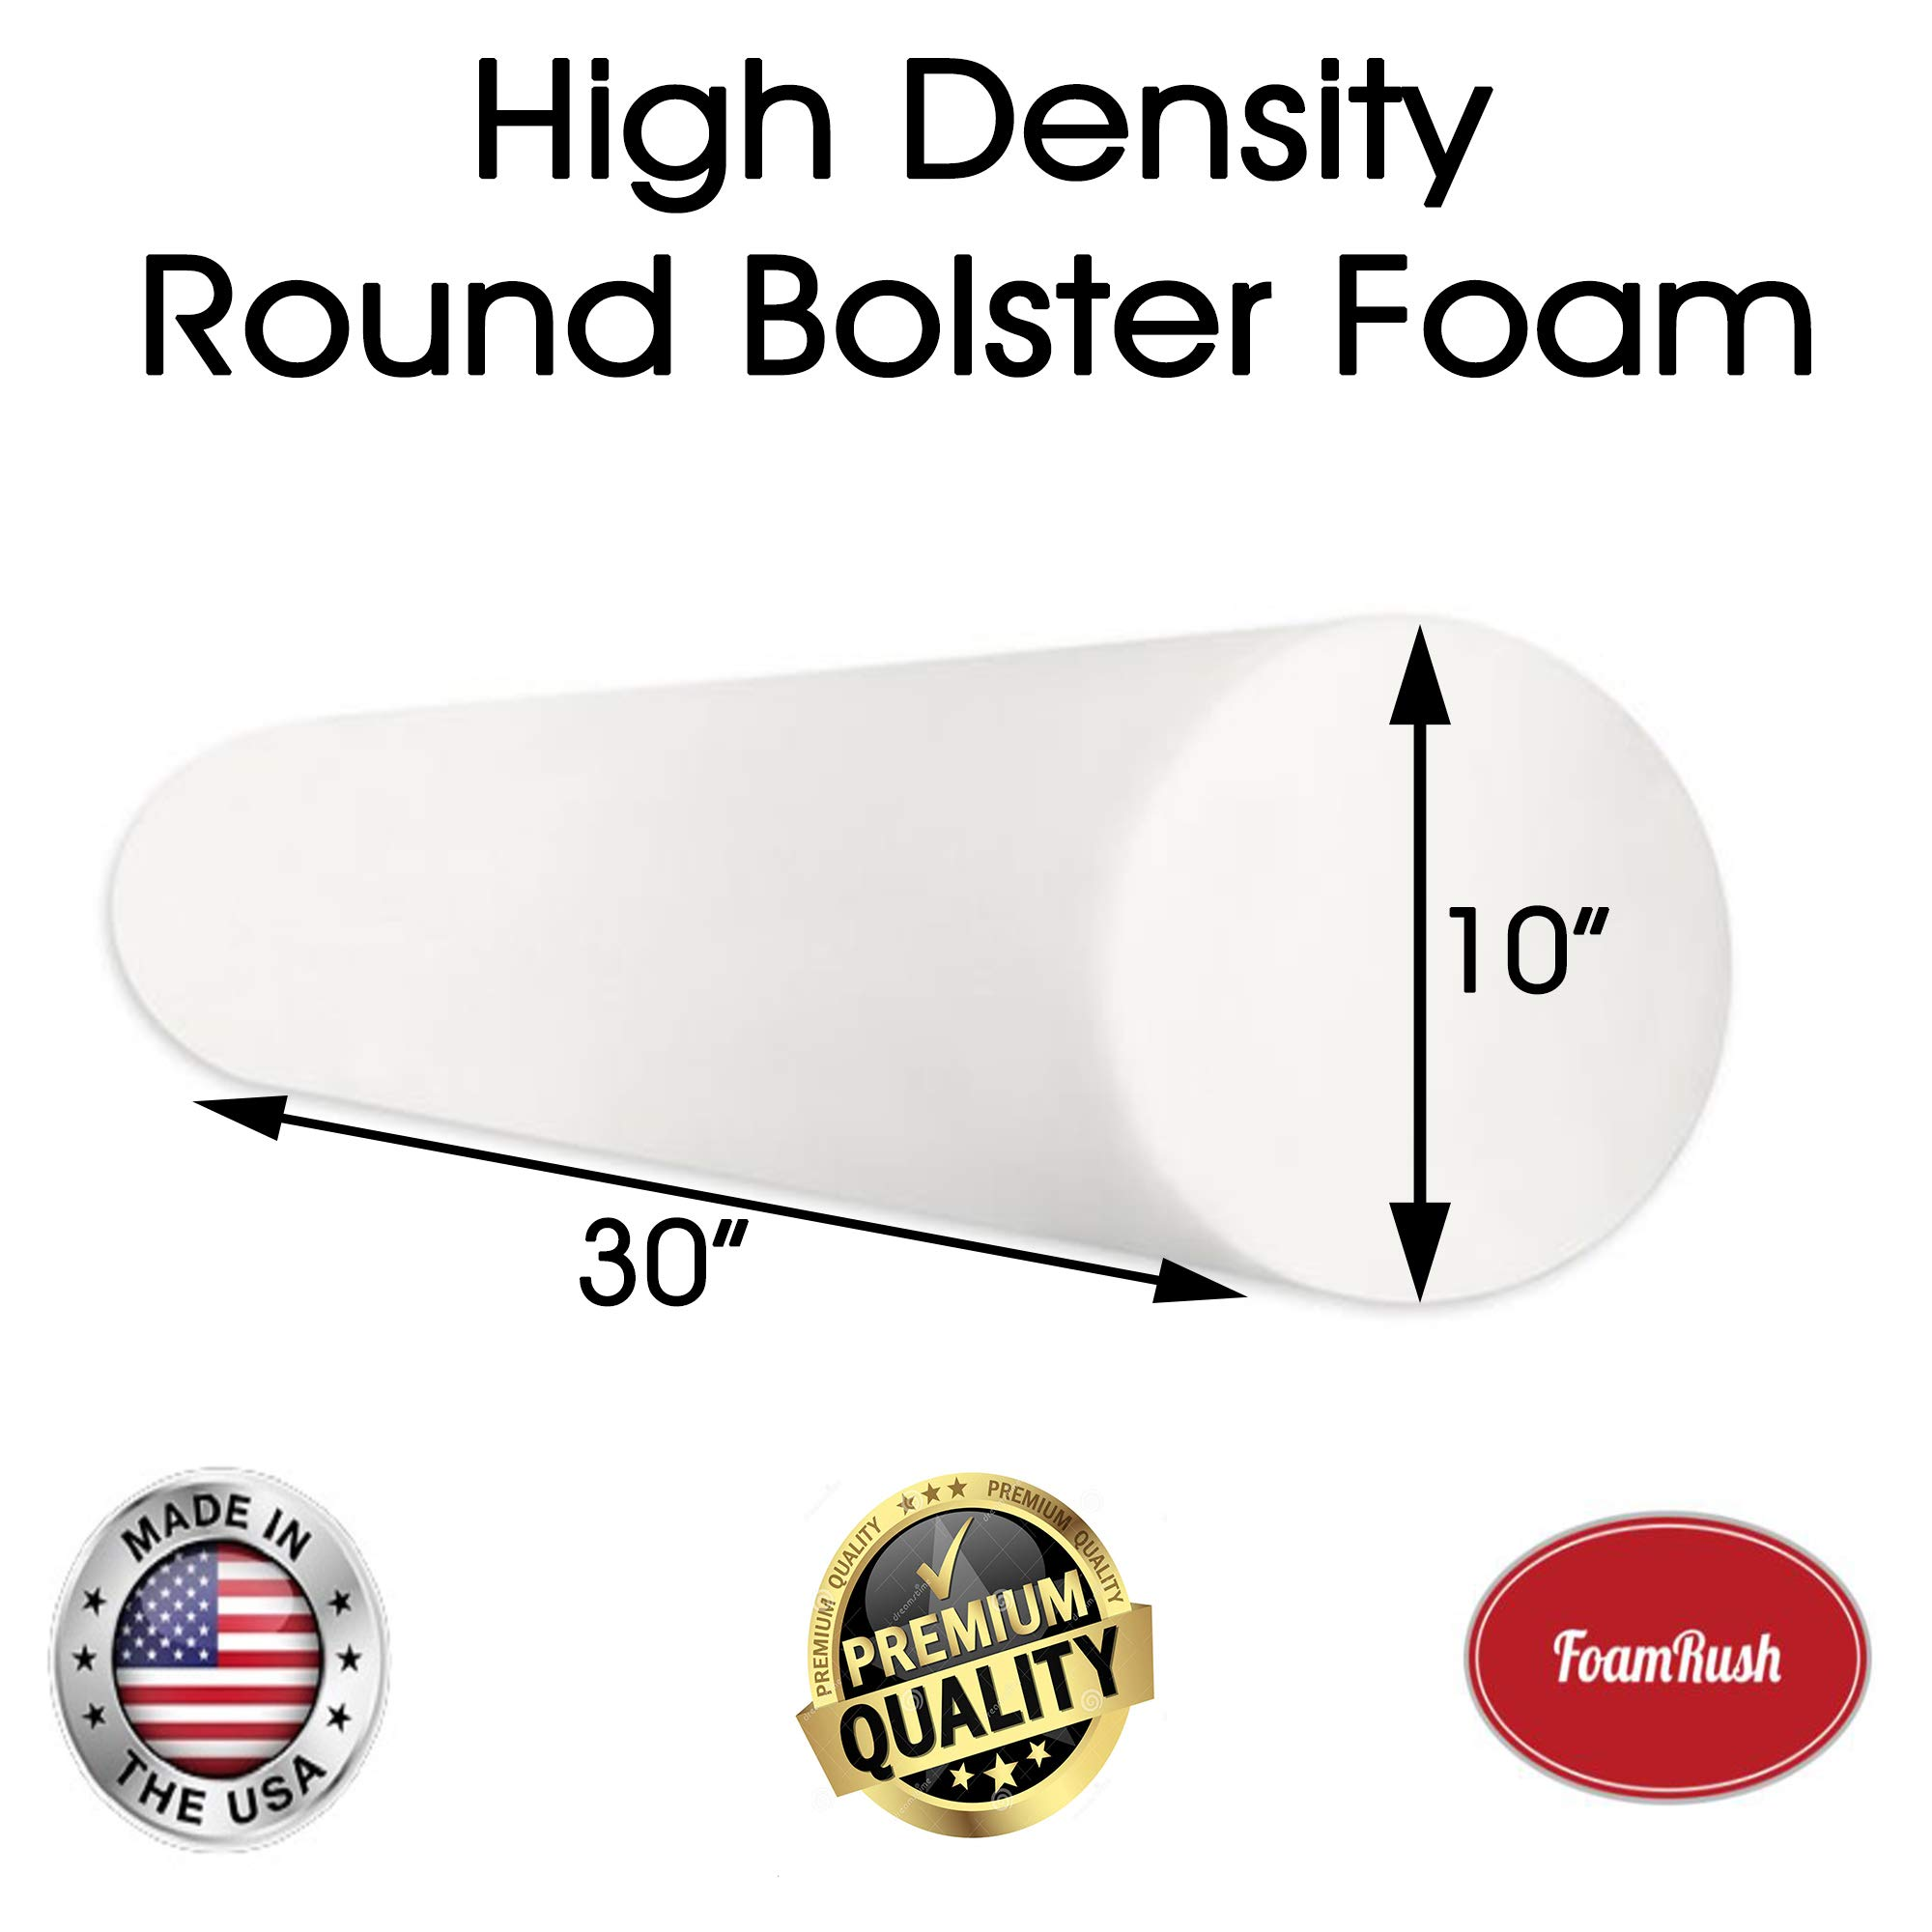 FoamRush 10'' Diameter x 30'' Long Premium Quality High Density Round Bolster Upholstery Foam Roller (Ideal for Yoga, Pilates, Strength Training, and General Fitness) Made in USA